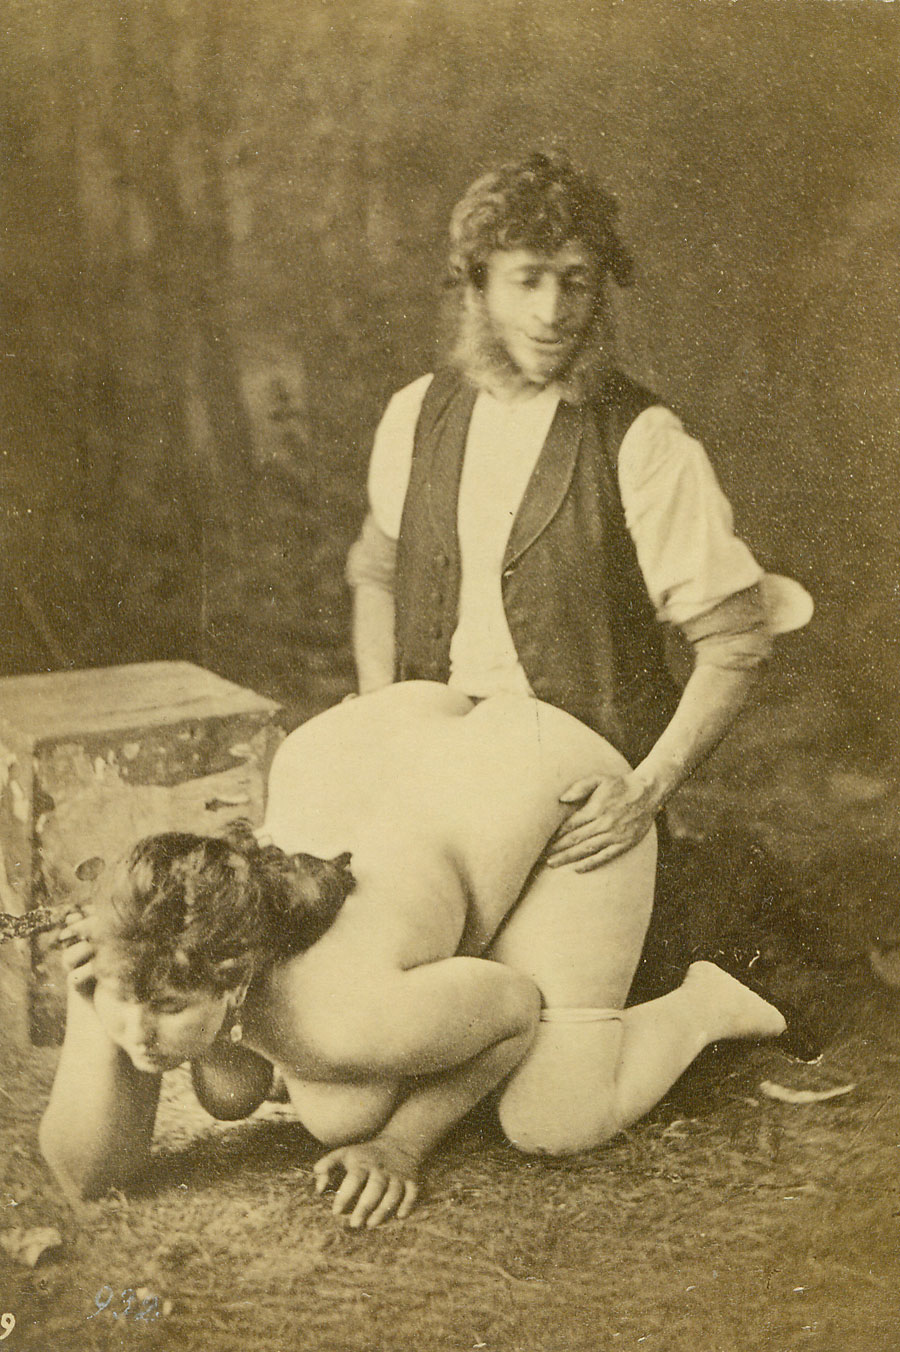 Nudes victorian woman question